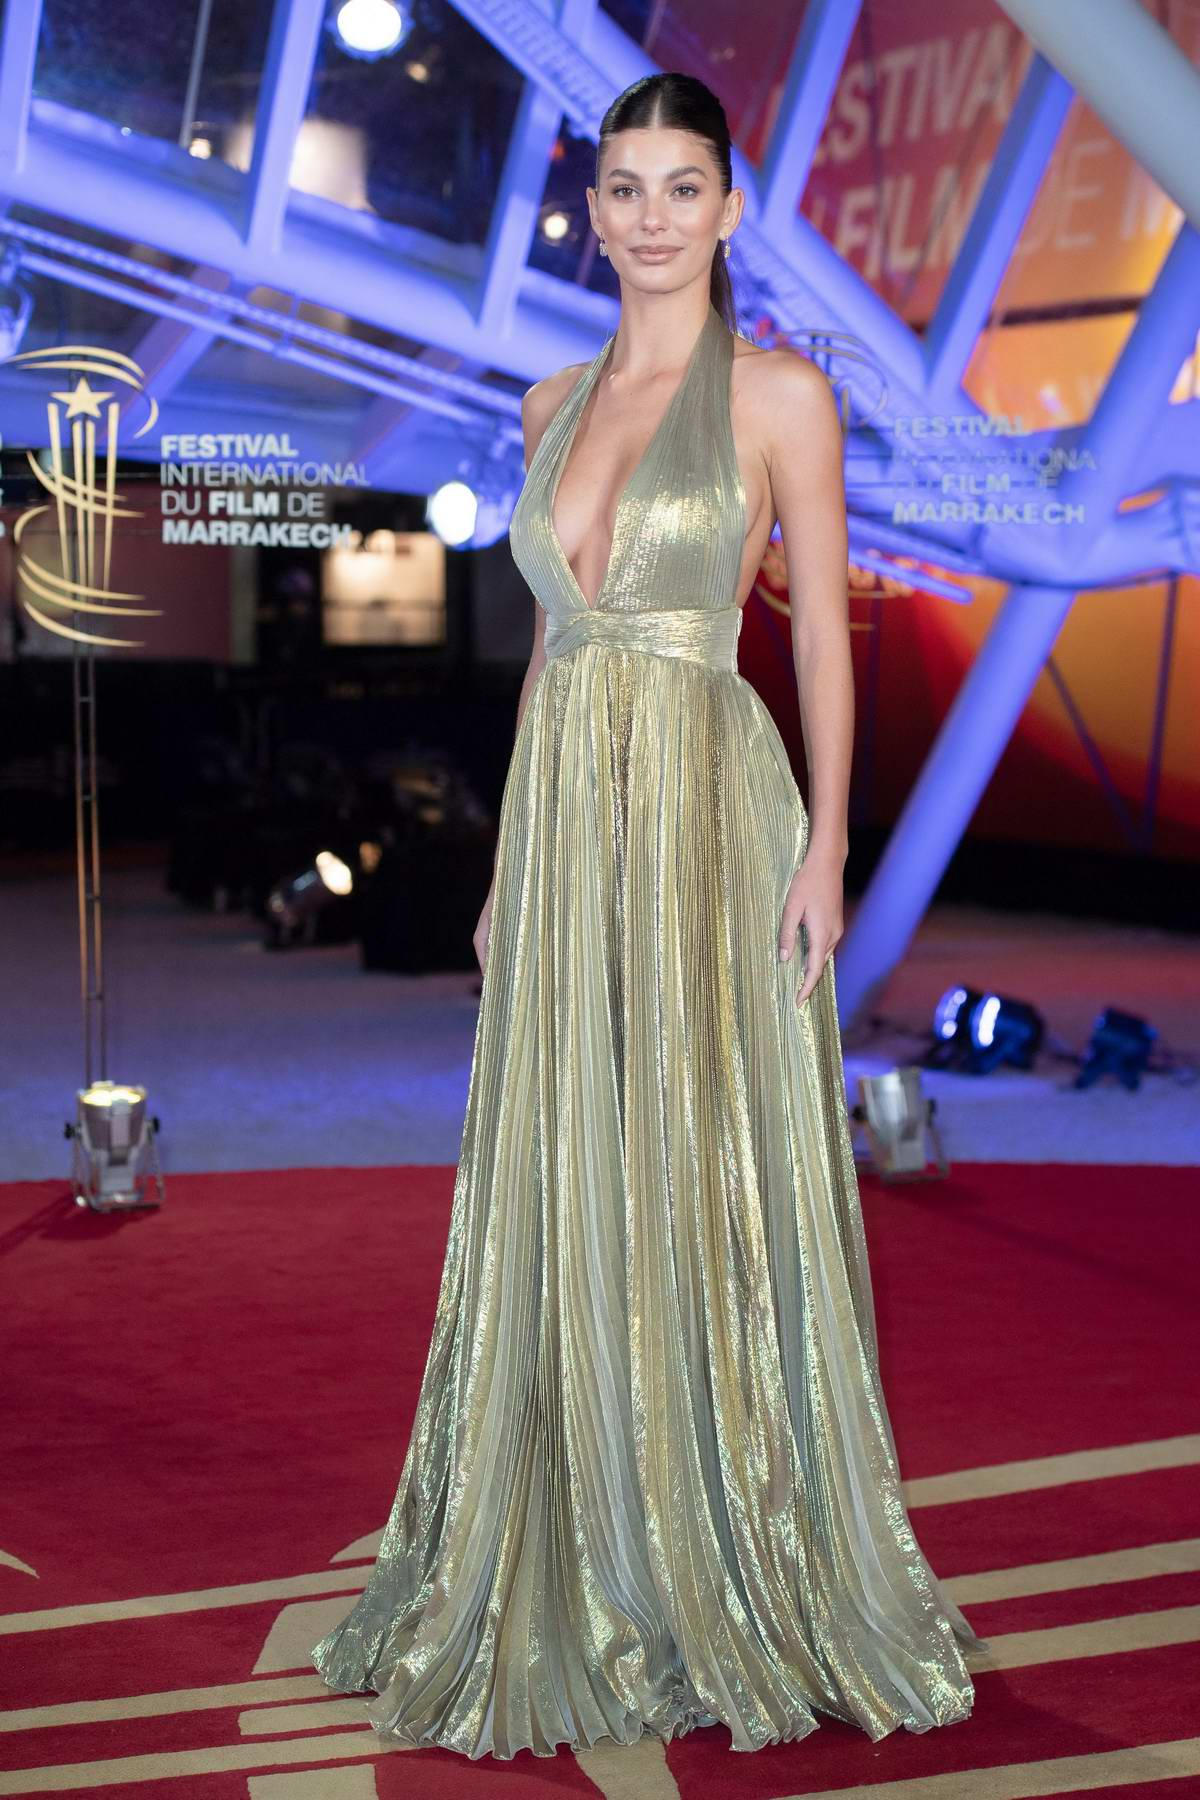 Camila Morrone attends the Tribute to Australian Cinema at the Jemaa El-Fnaa square in Marrakesh, Morocco